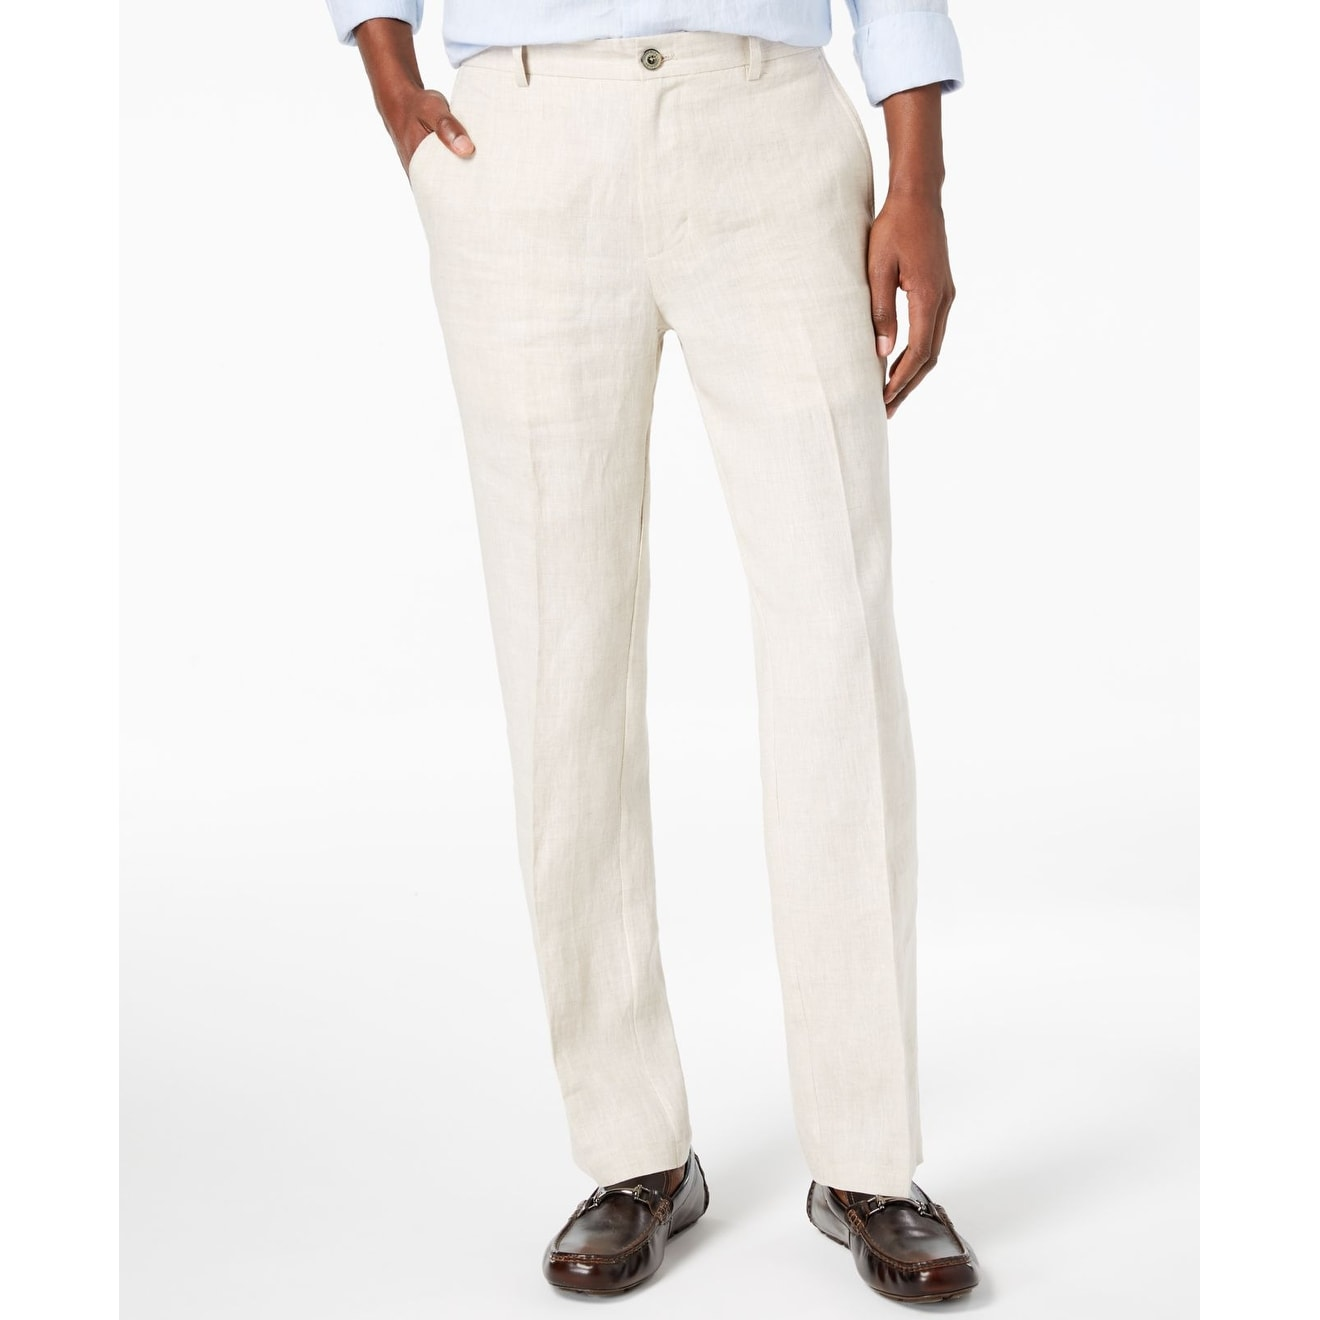 4c3049f4b0 Shop Tasso Elba Natural Beige Mens Size 38X30 Flat Front Linen Pants - On  Sale - Free Shipping On Orders Over $45 - Overstock - 28049320